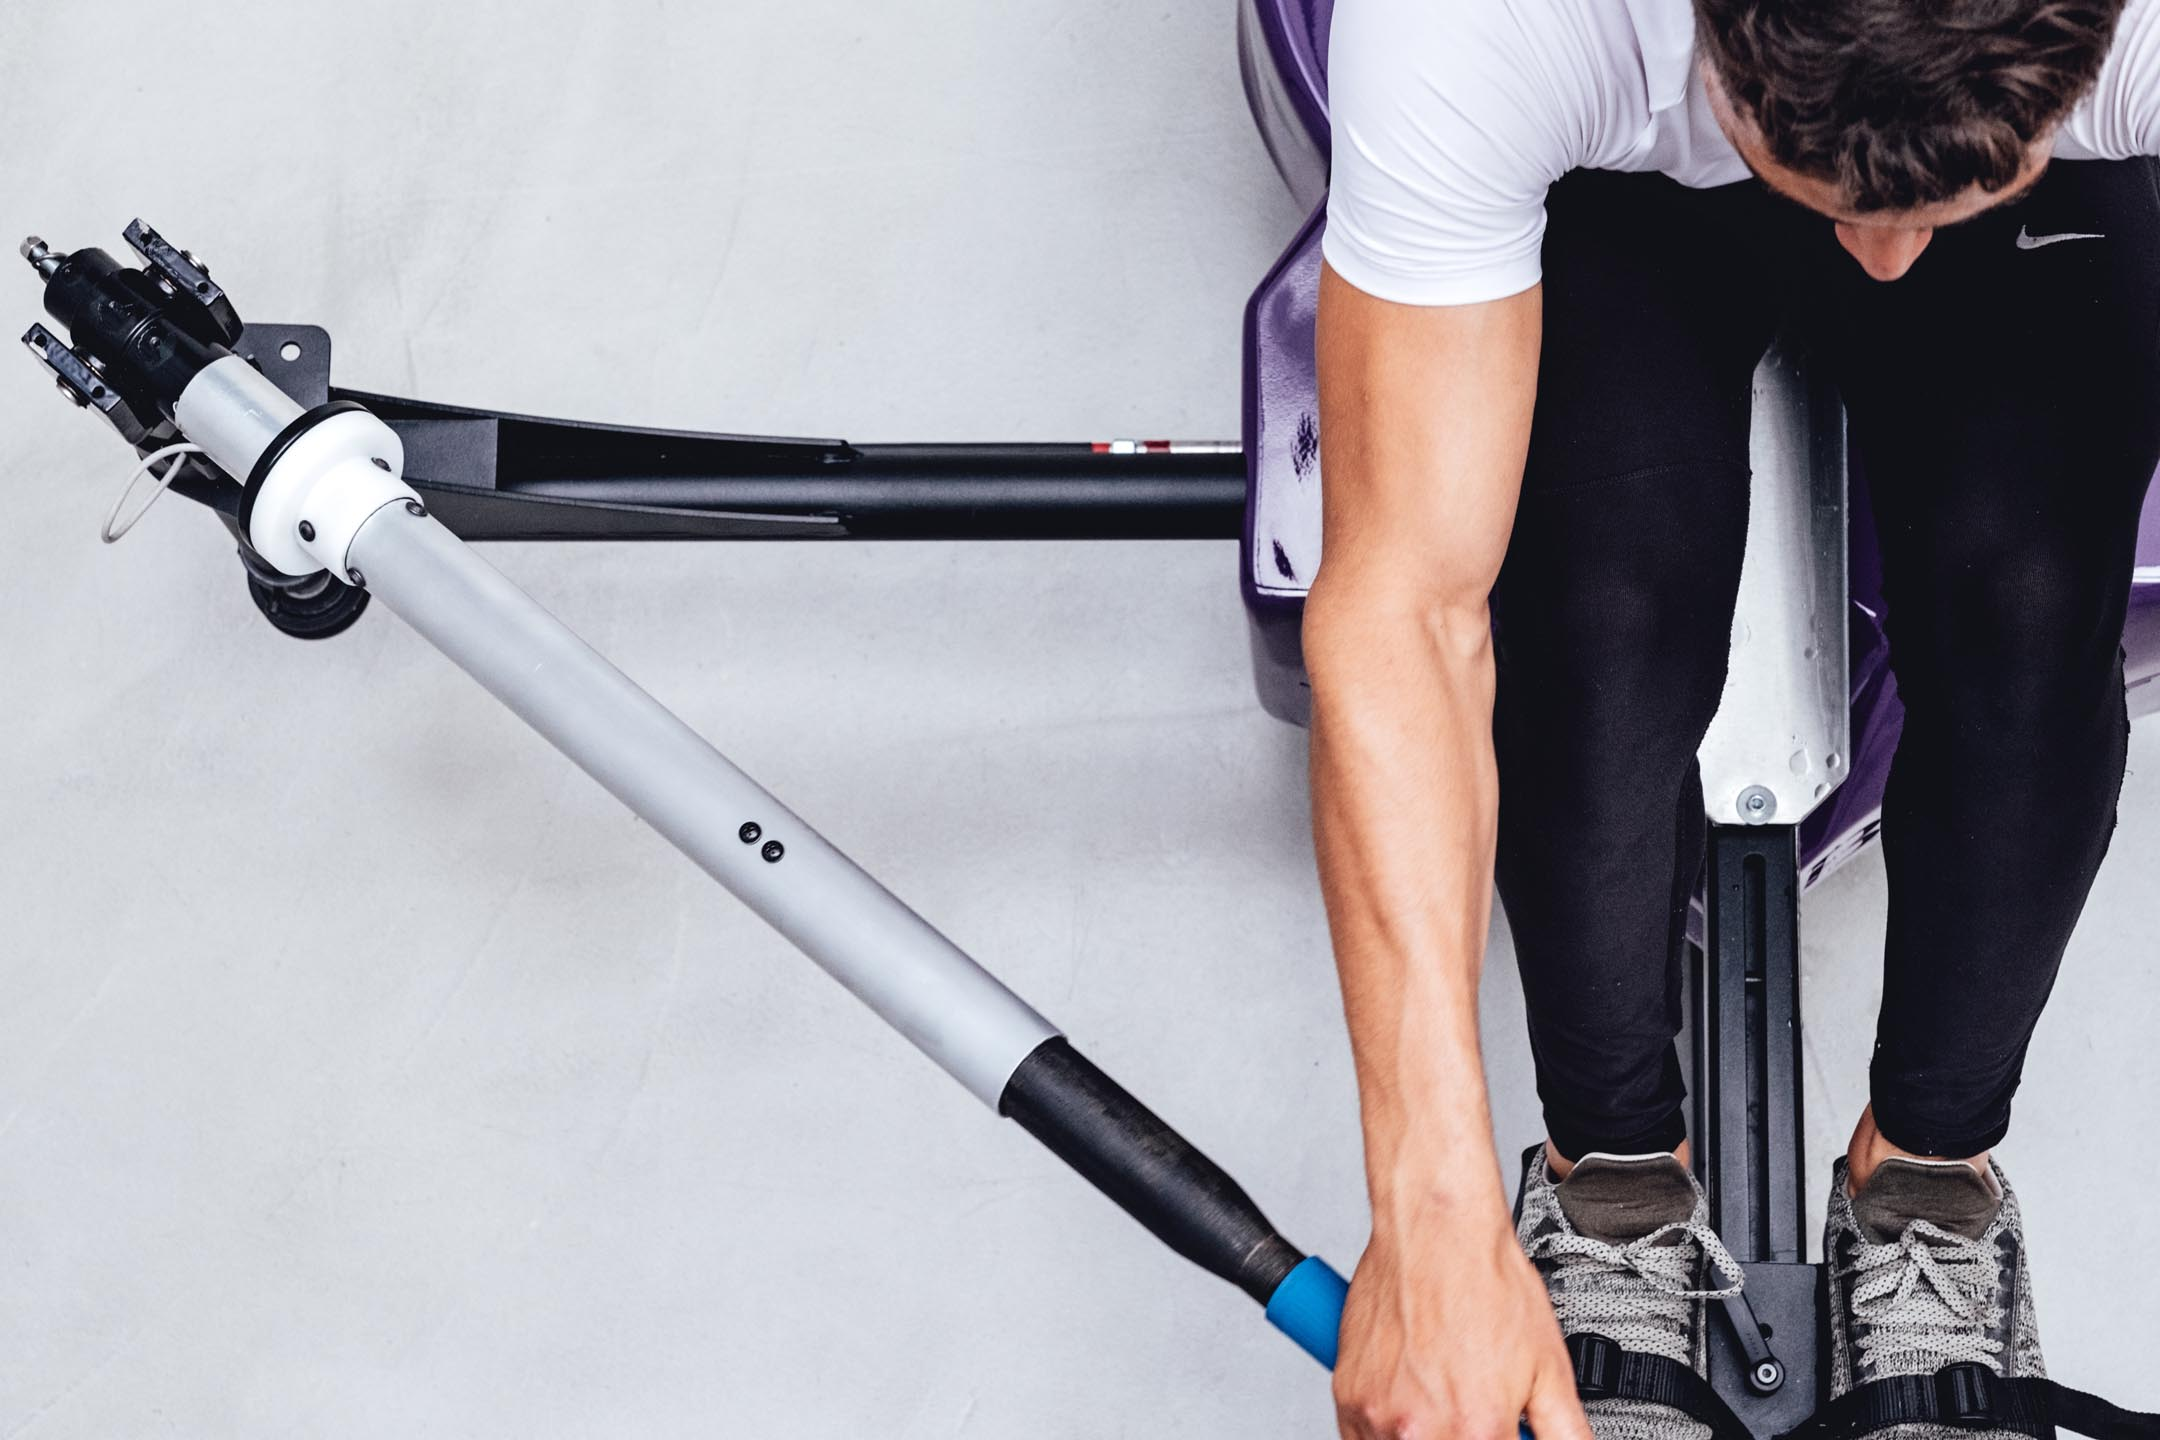 Biorower is the best rowing machine in the world